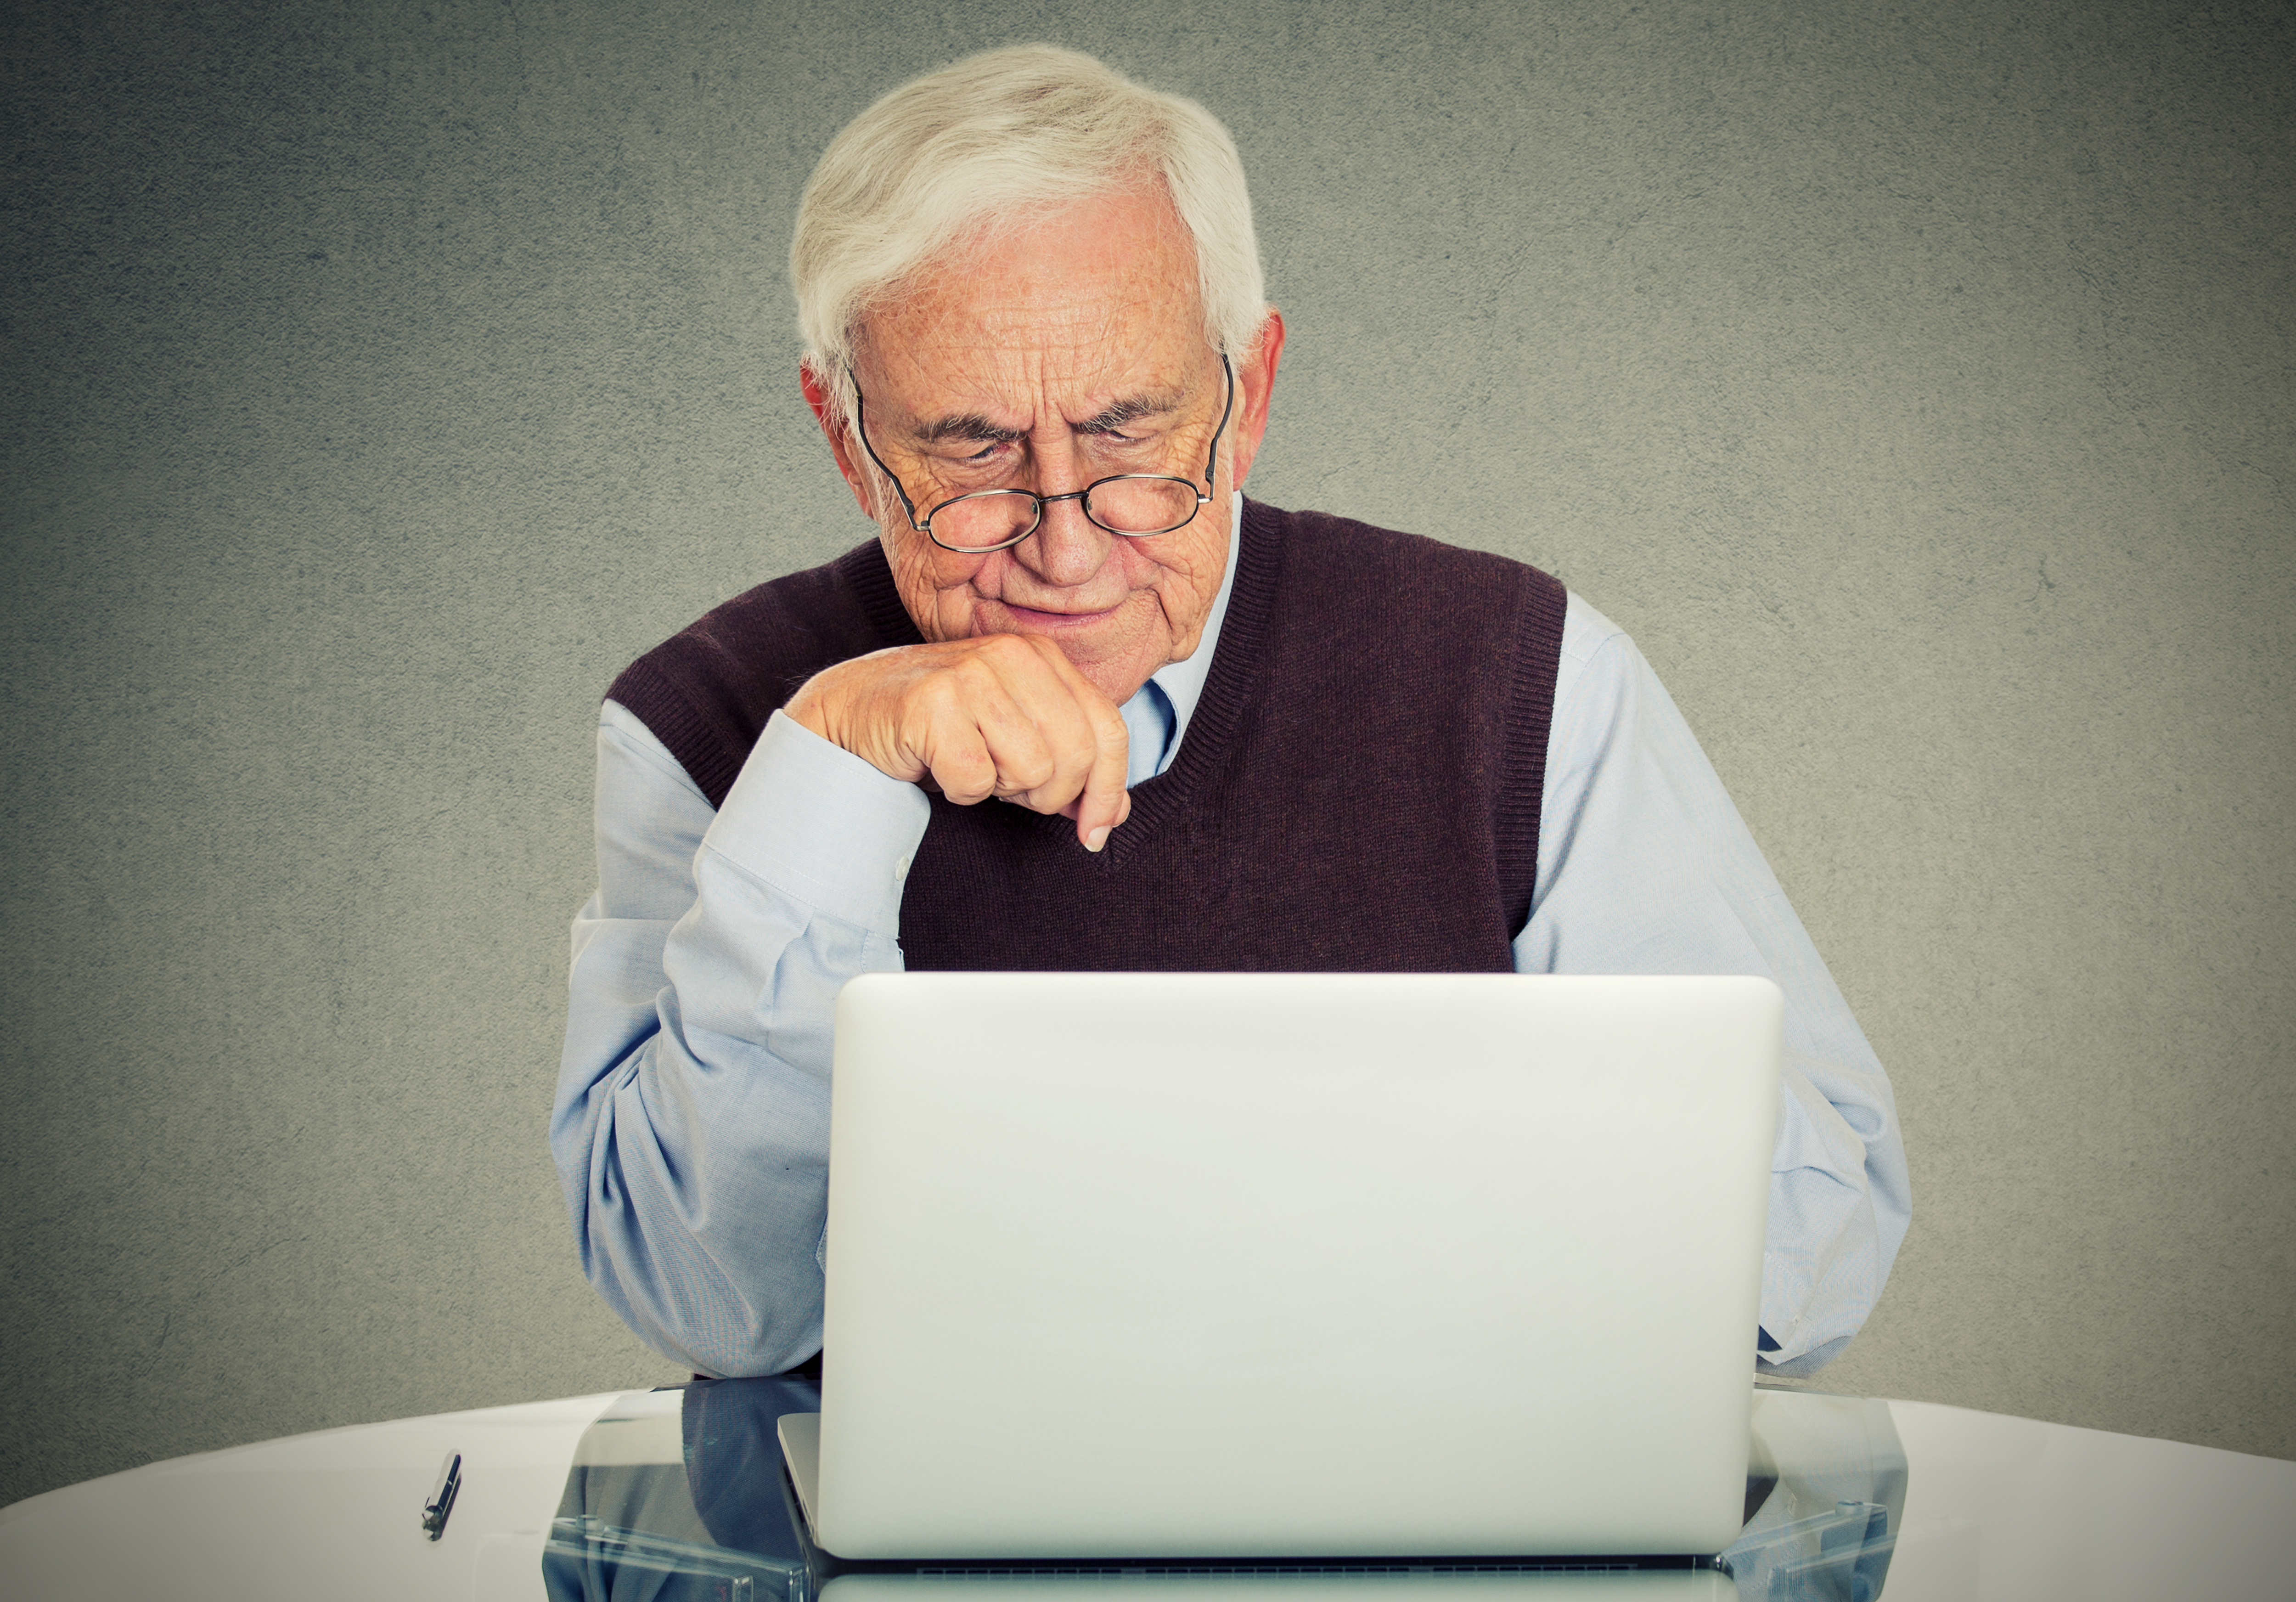 Concern mounts about mandatory retirement age policies at accounting httpsassetsurcemedia678b7f0fa0e64482b53485c08afa718d fandeluxe Gallery